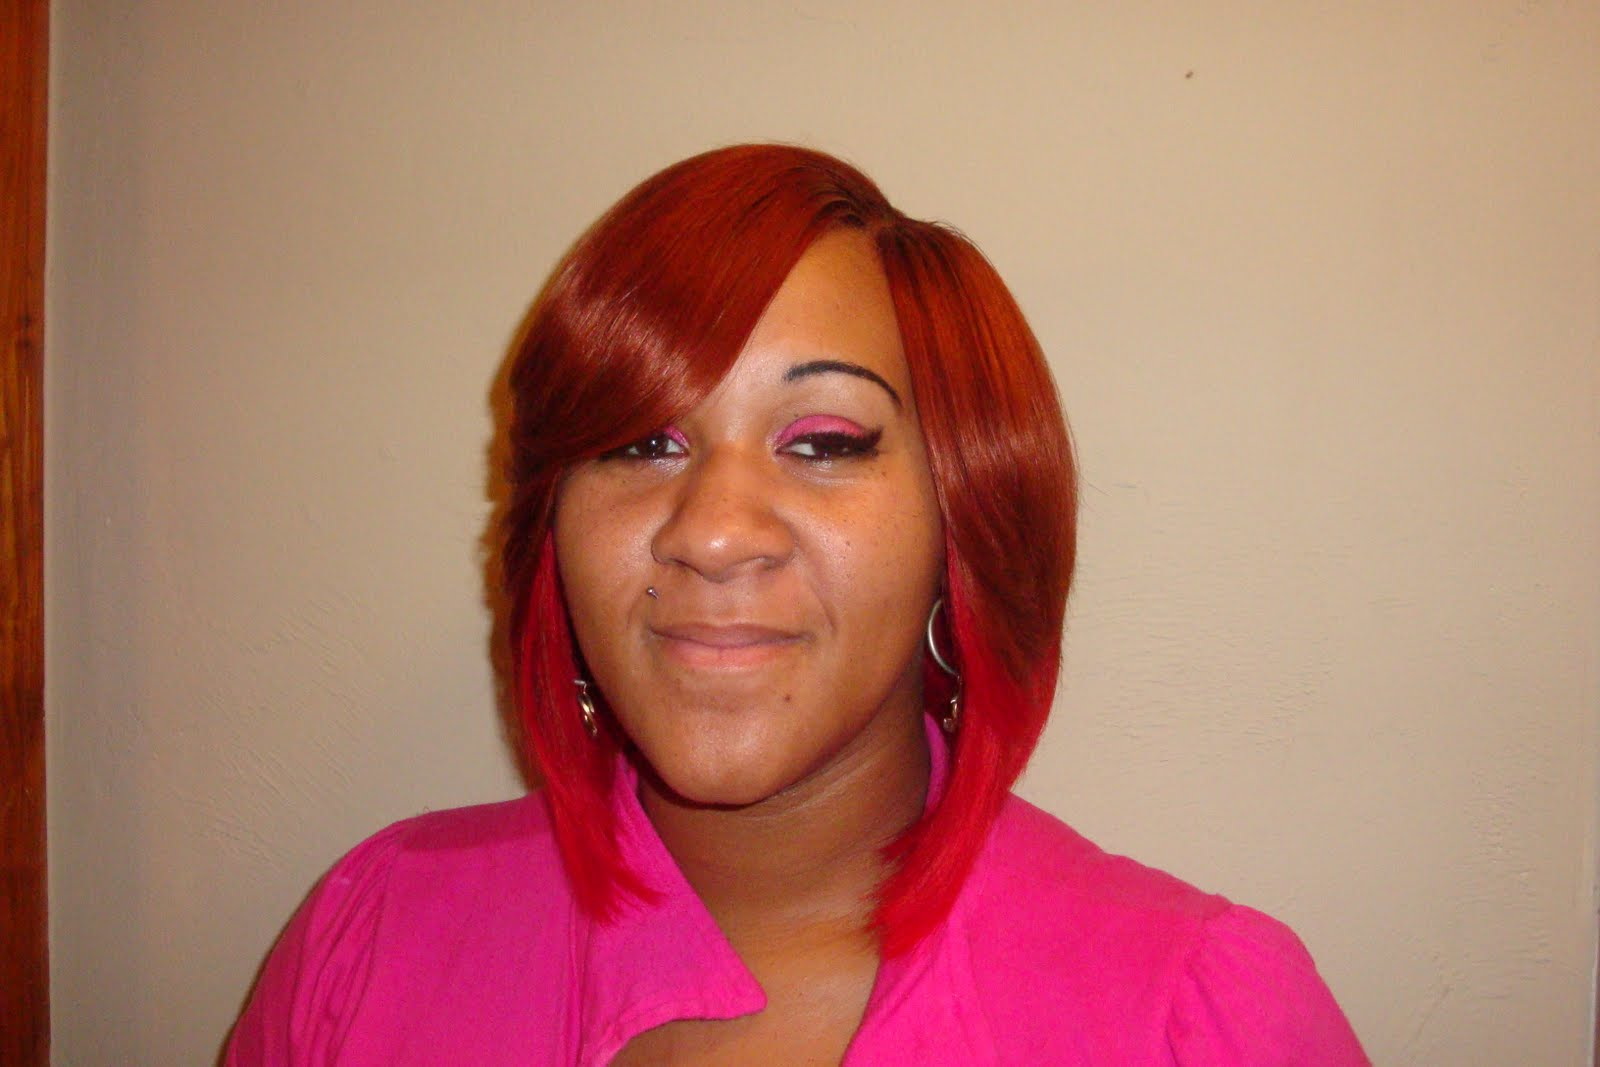 Bob with Invisible Part Sew in Weave Hairstyles